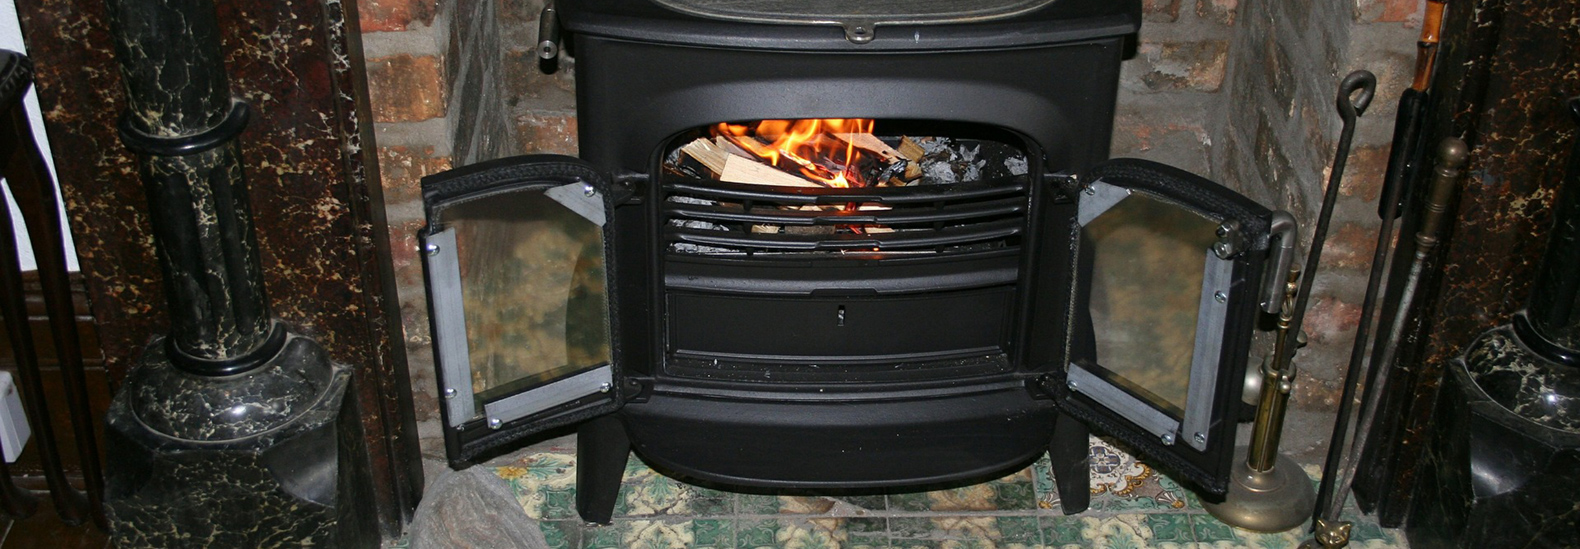 Wood-burning stoves can triple particulate matter levels in homes